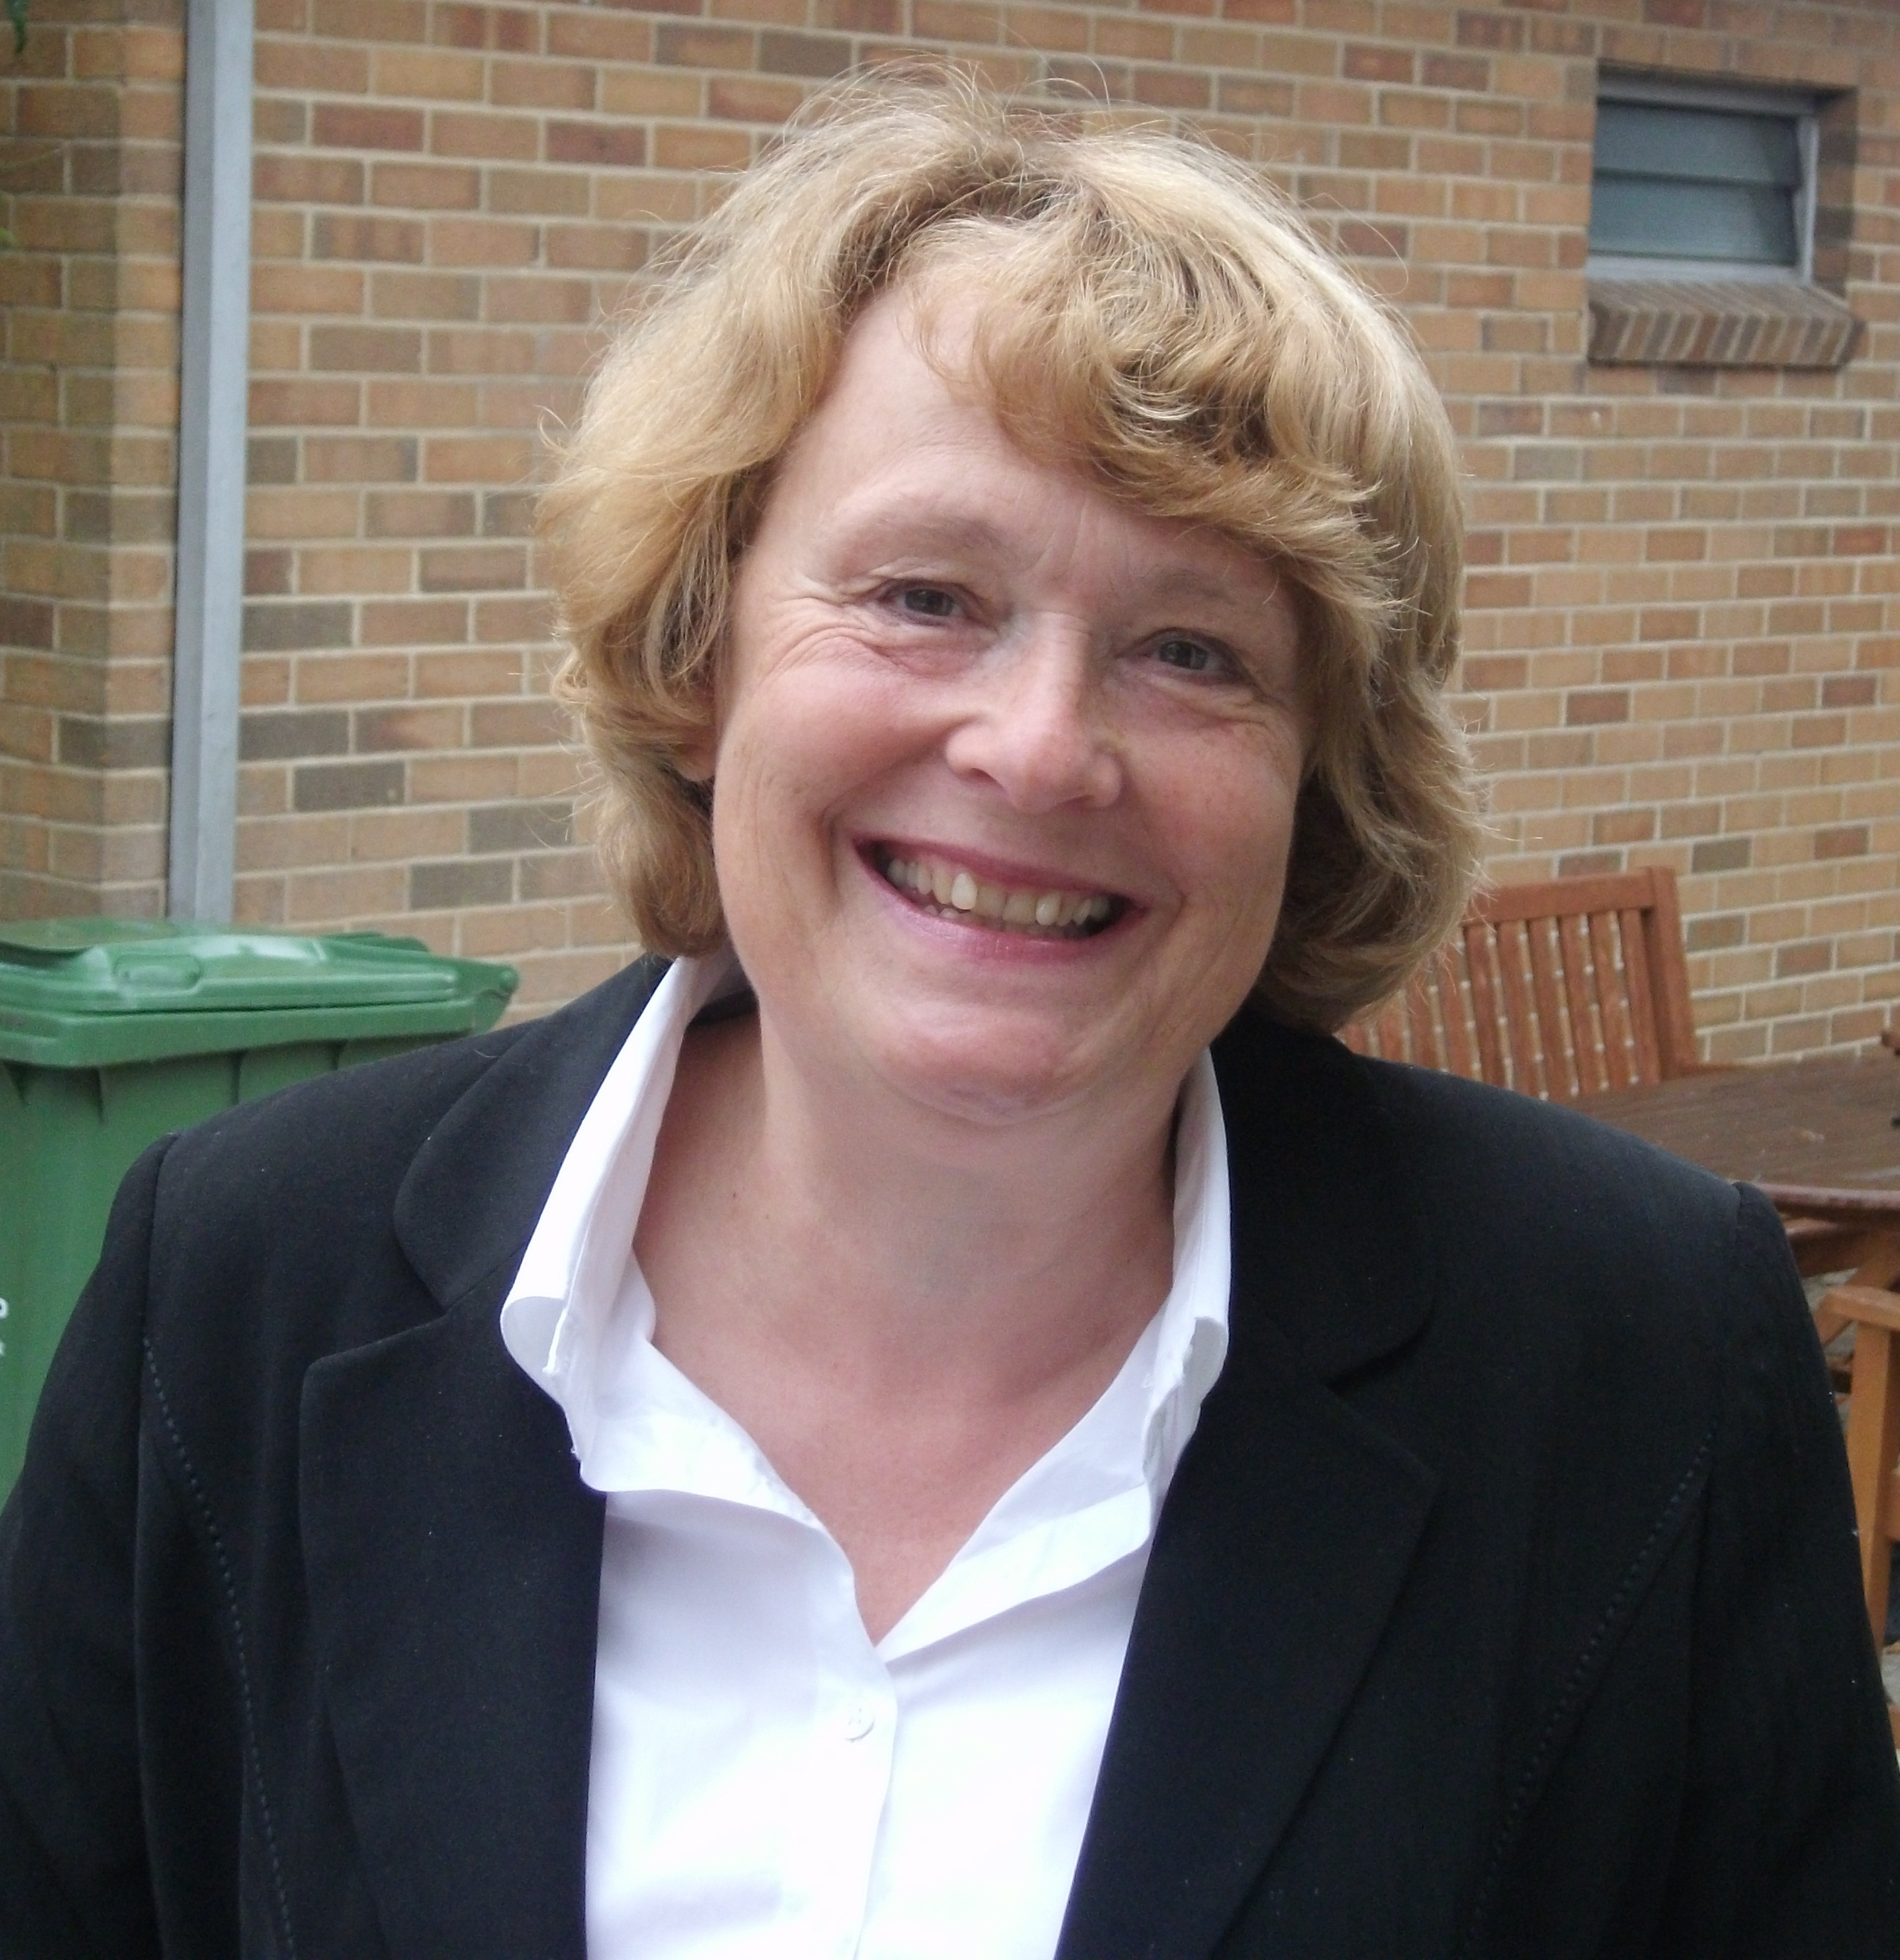 Our new CEO at Headway Cambs